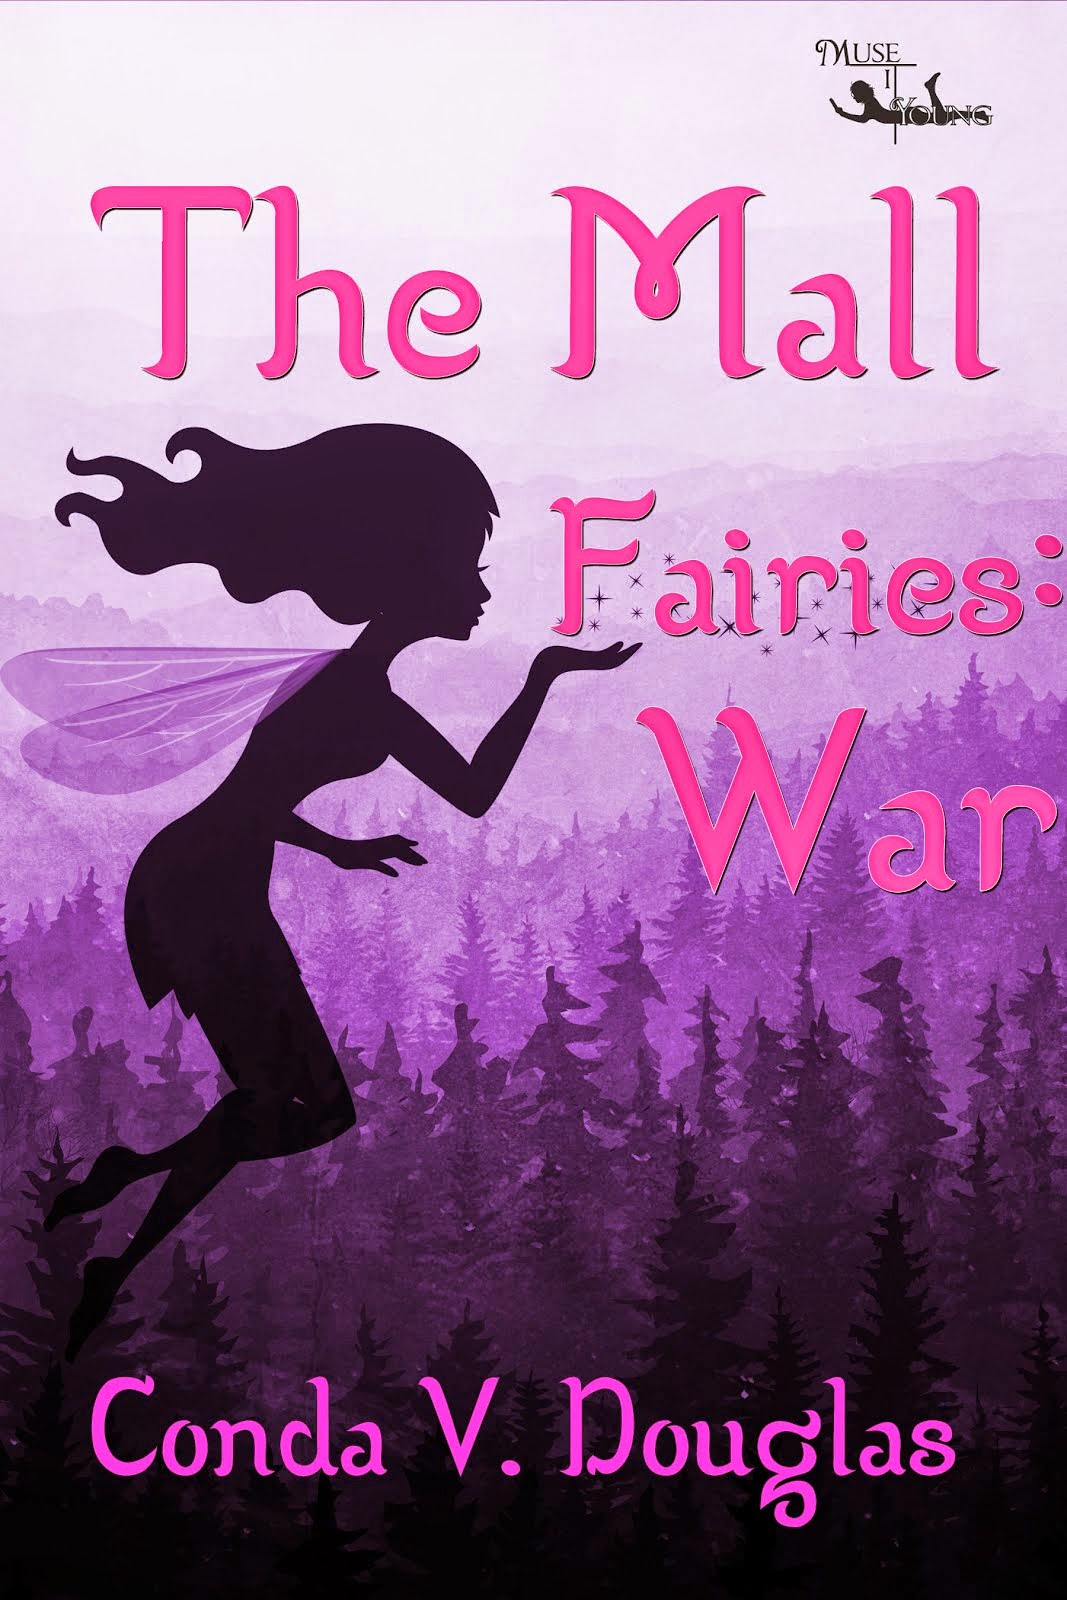 The Mall Fairies: War